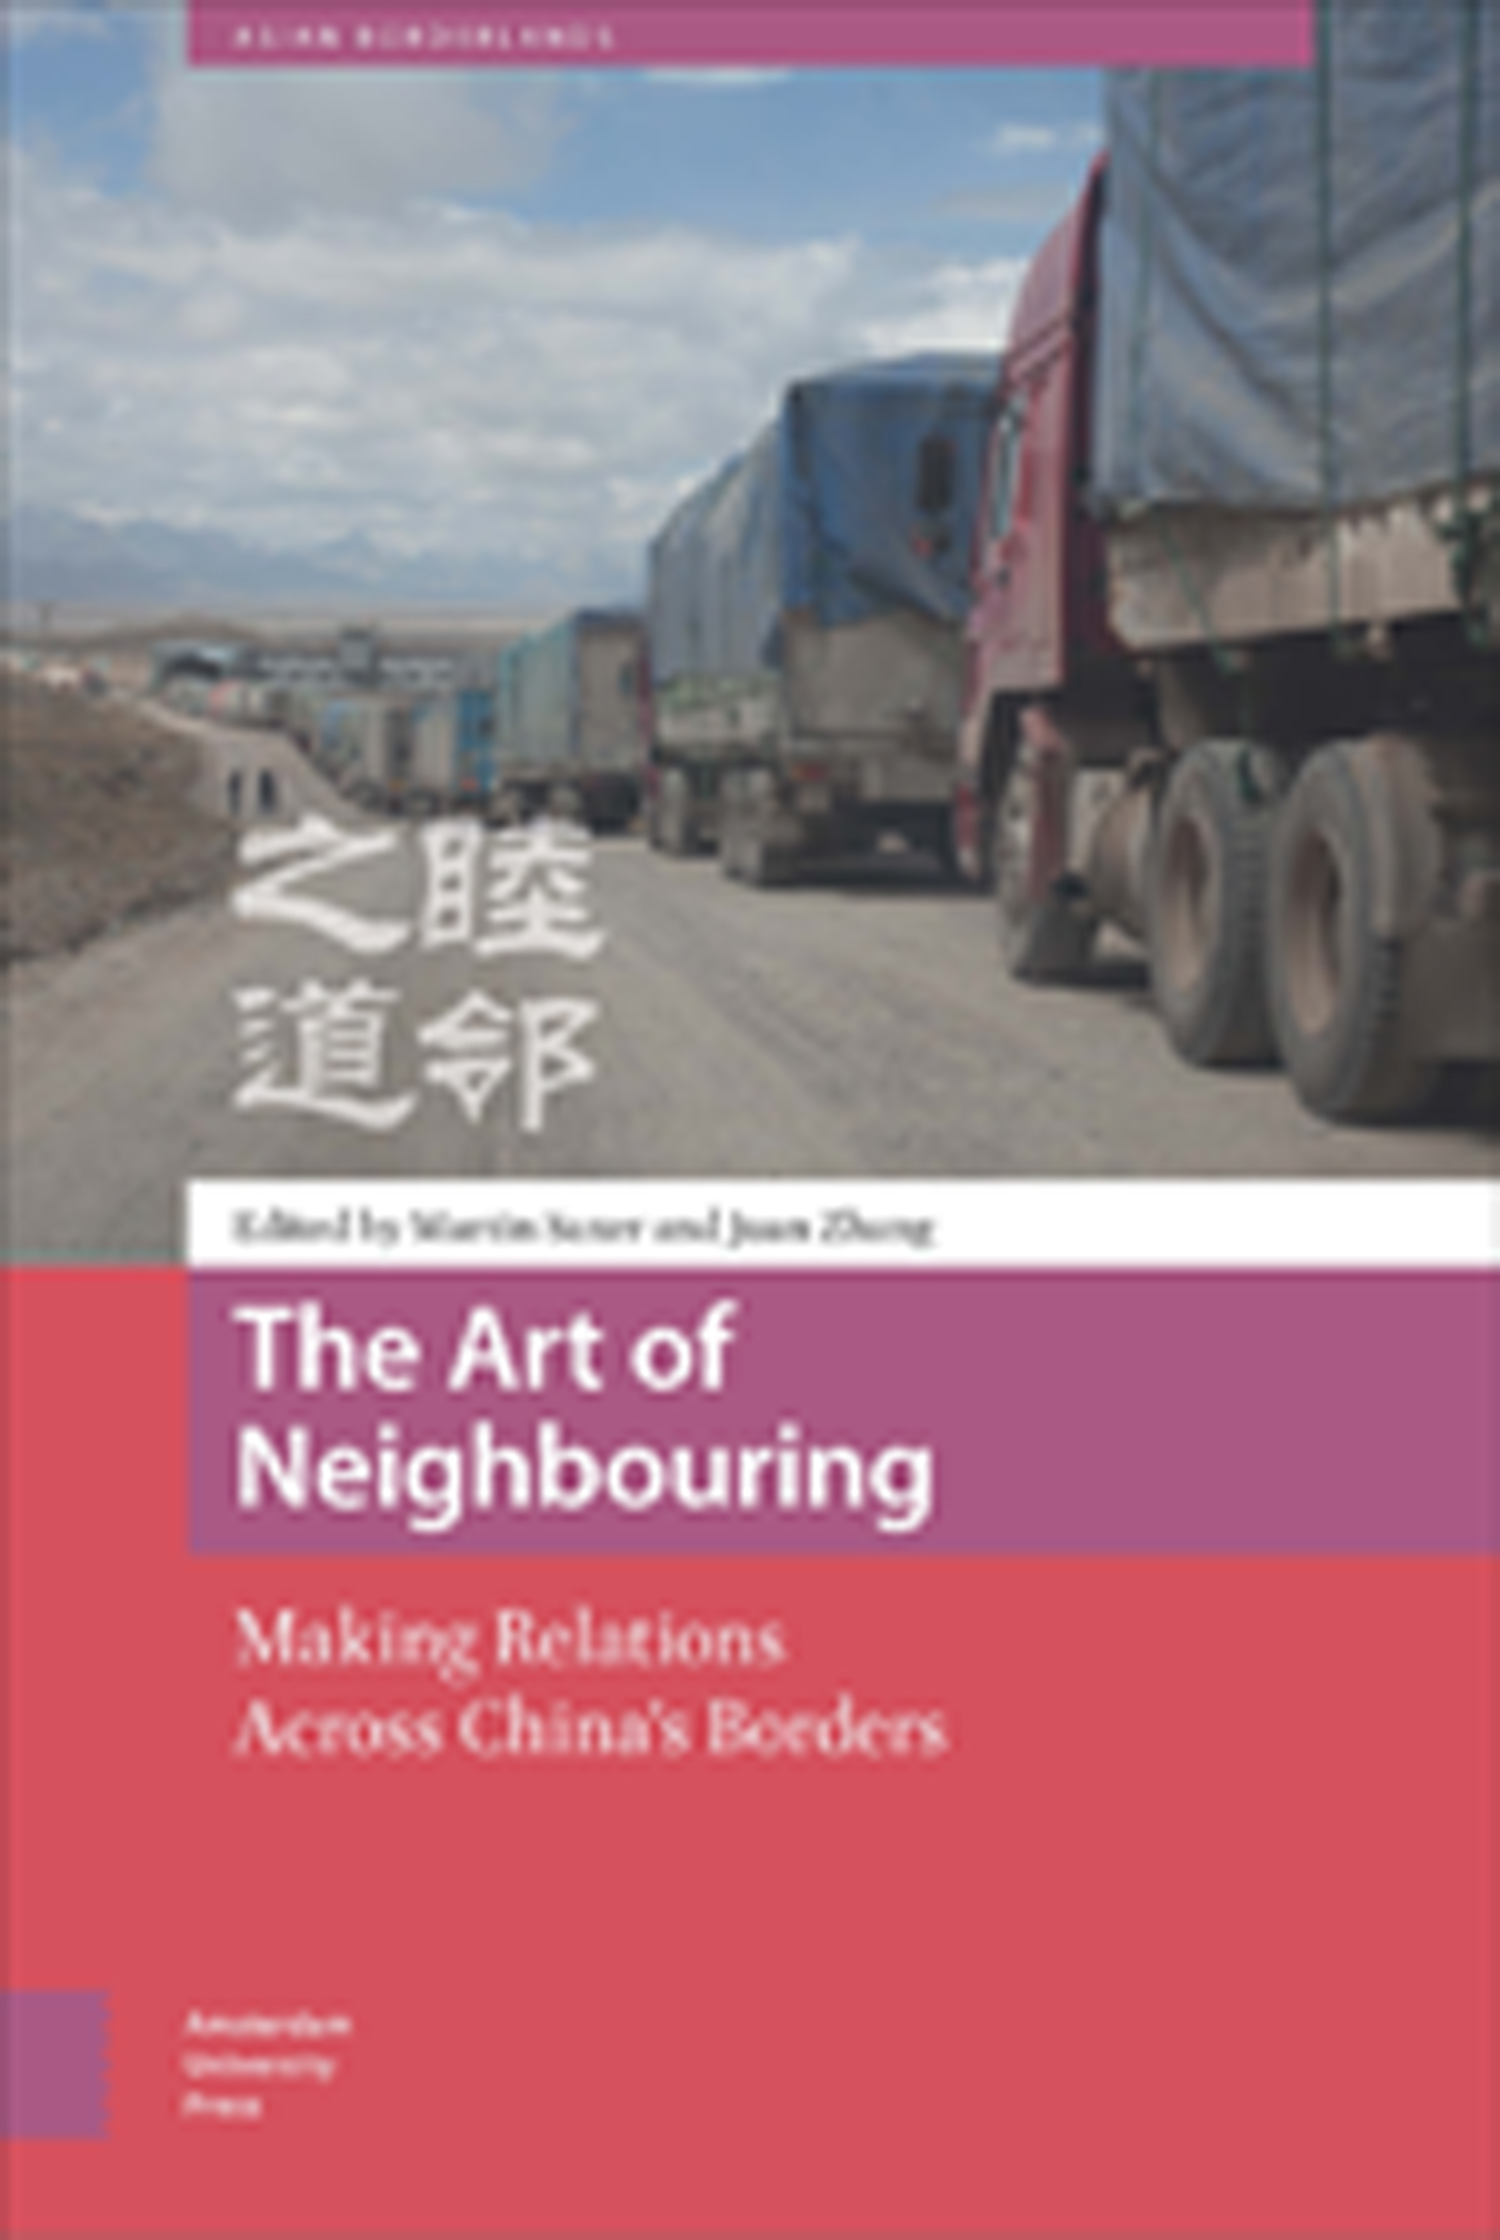 The Art of Neighbouring: Making Relations Across China's Borders